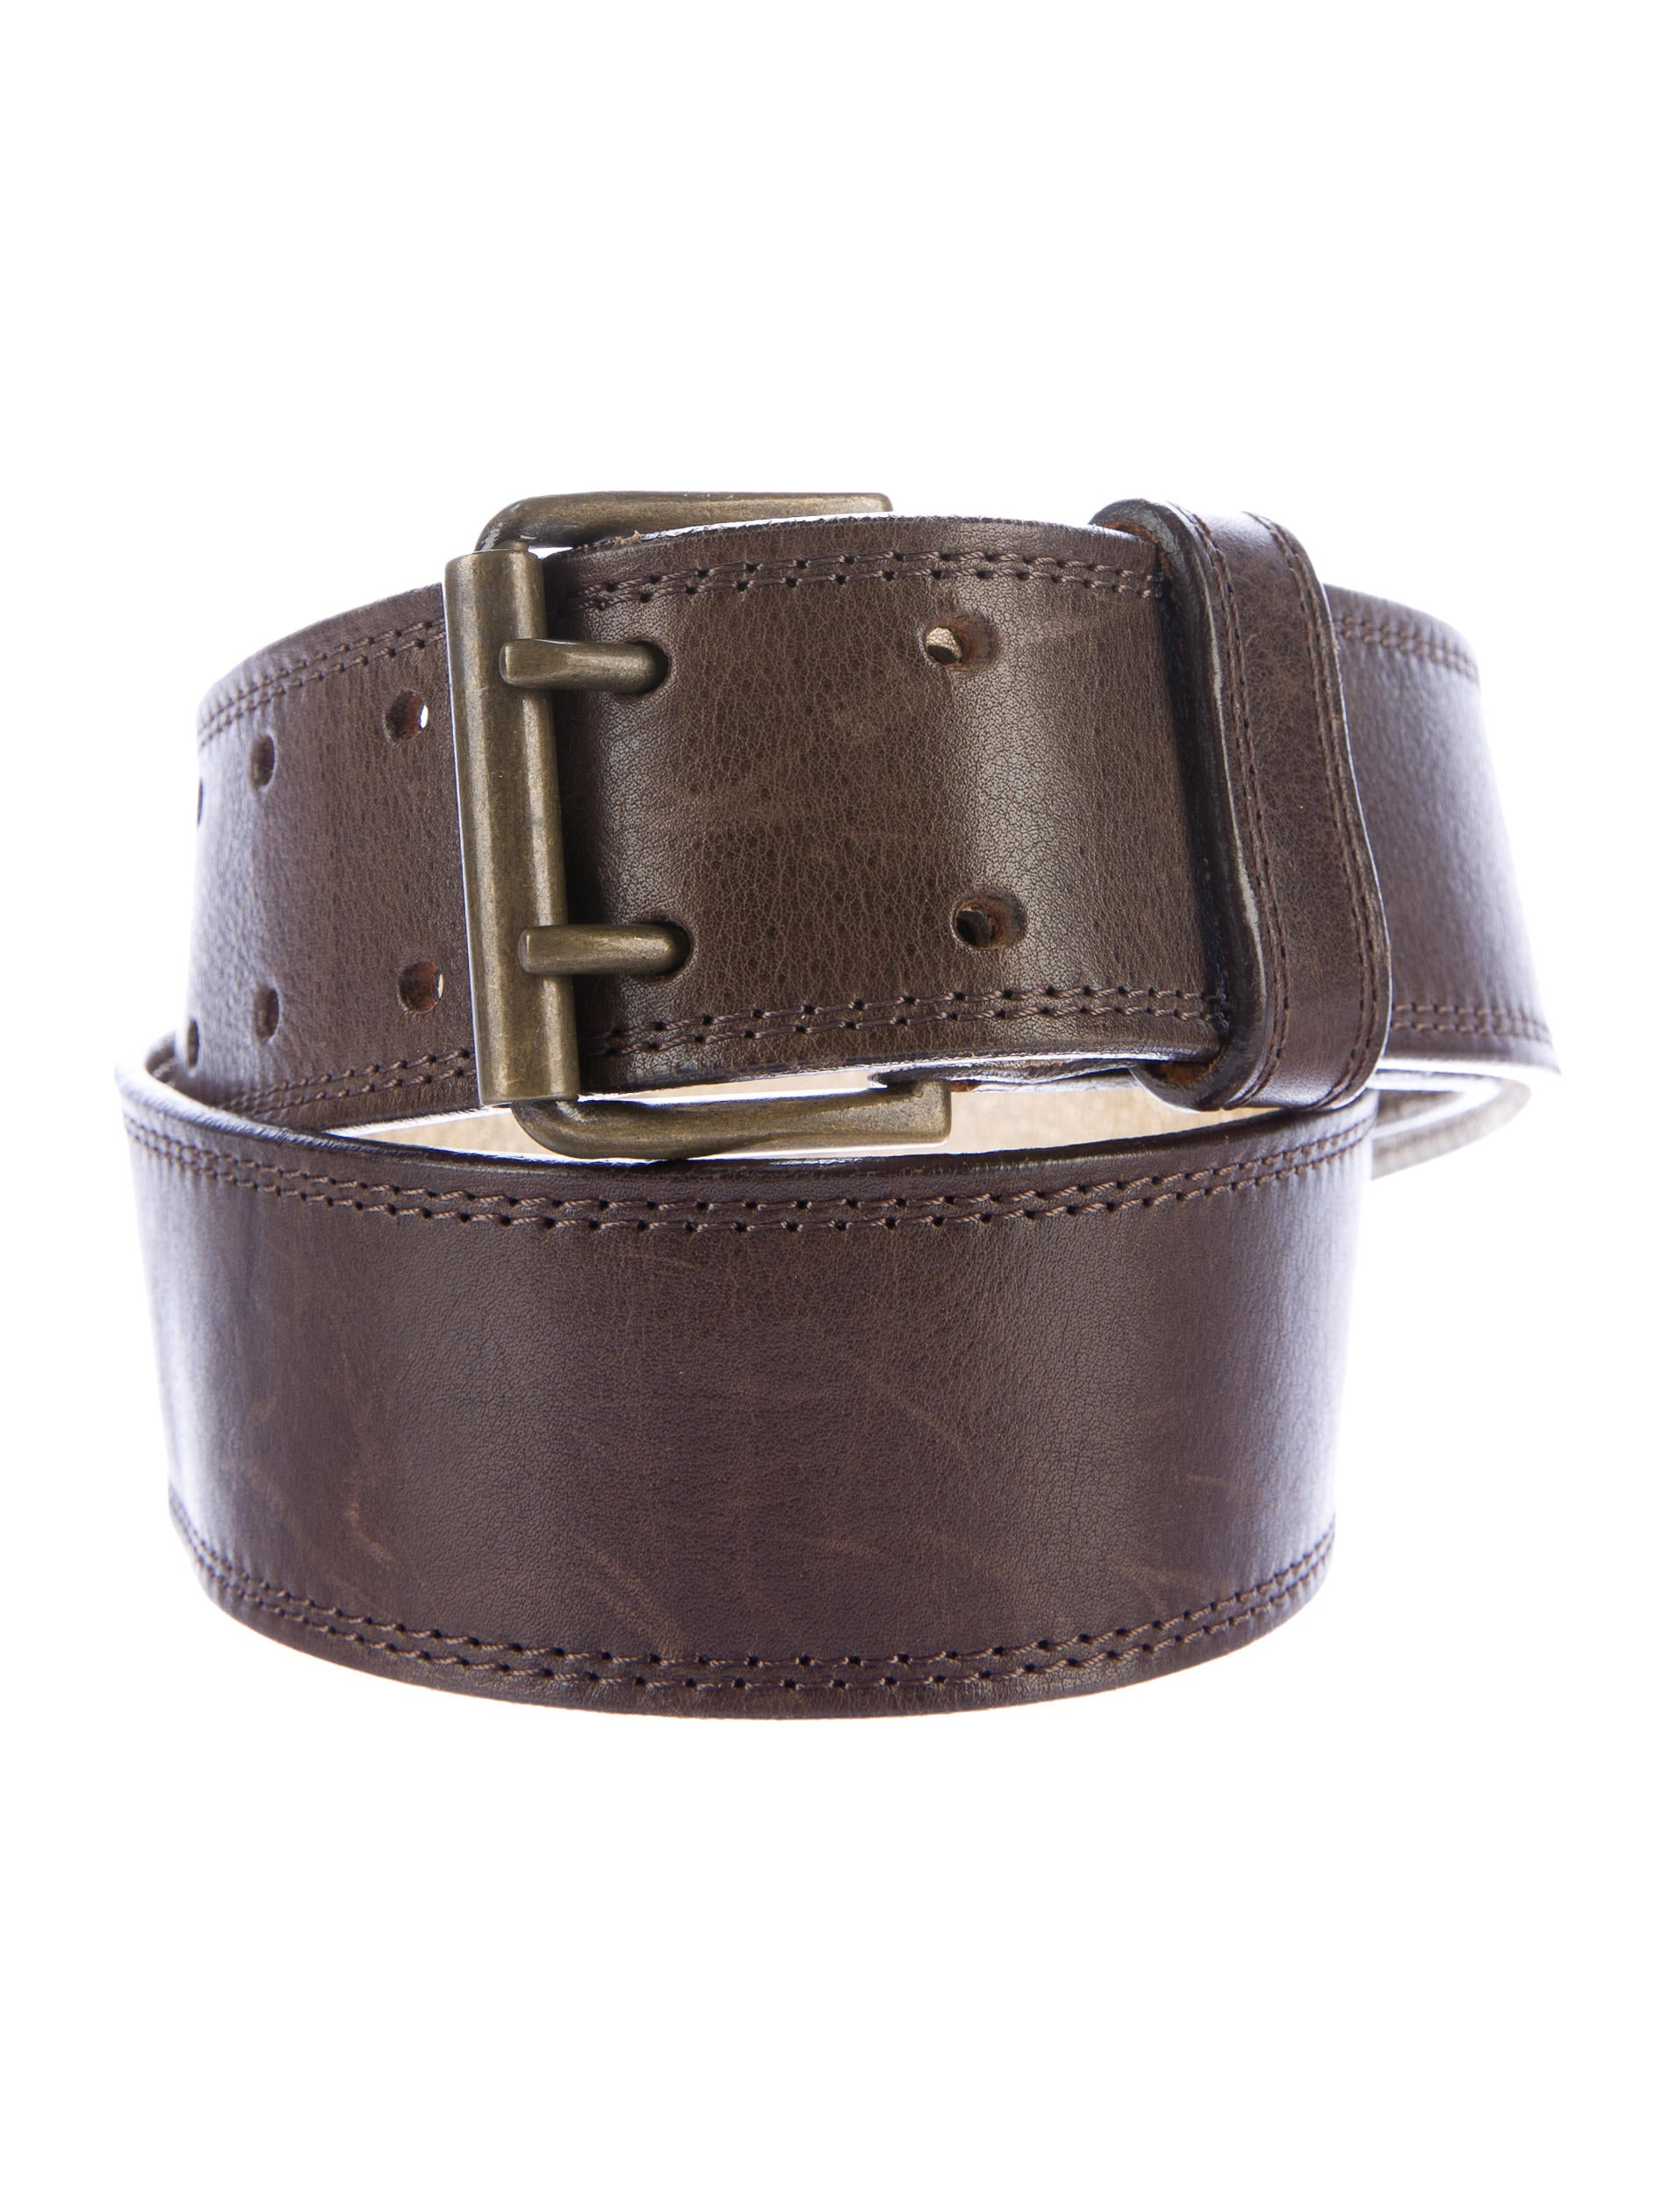 dries noten metallic trimmed leather belt